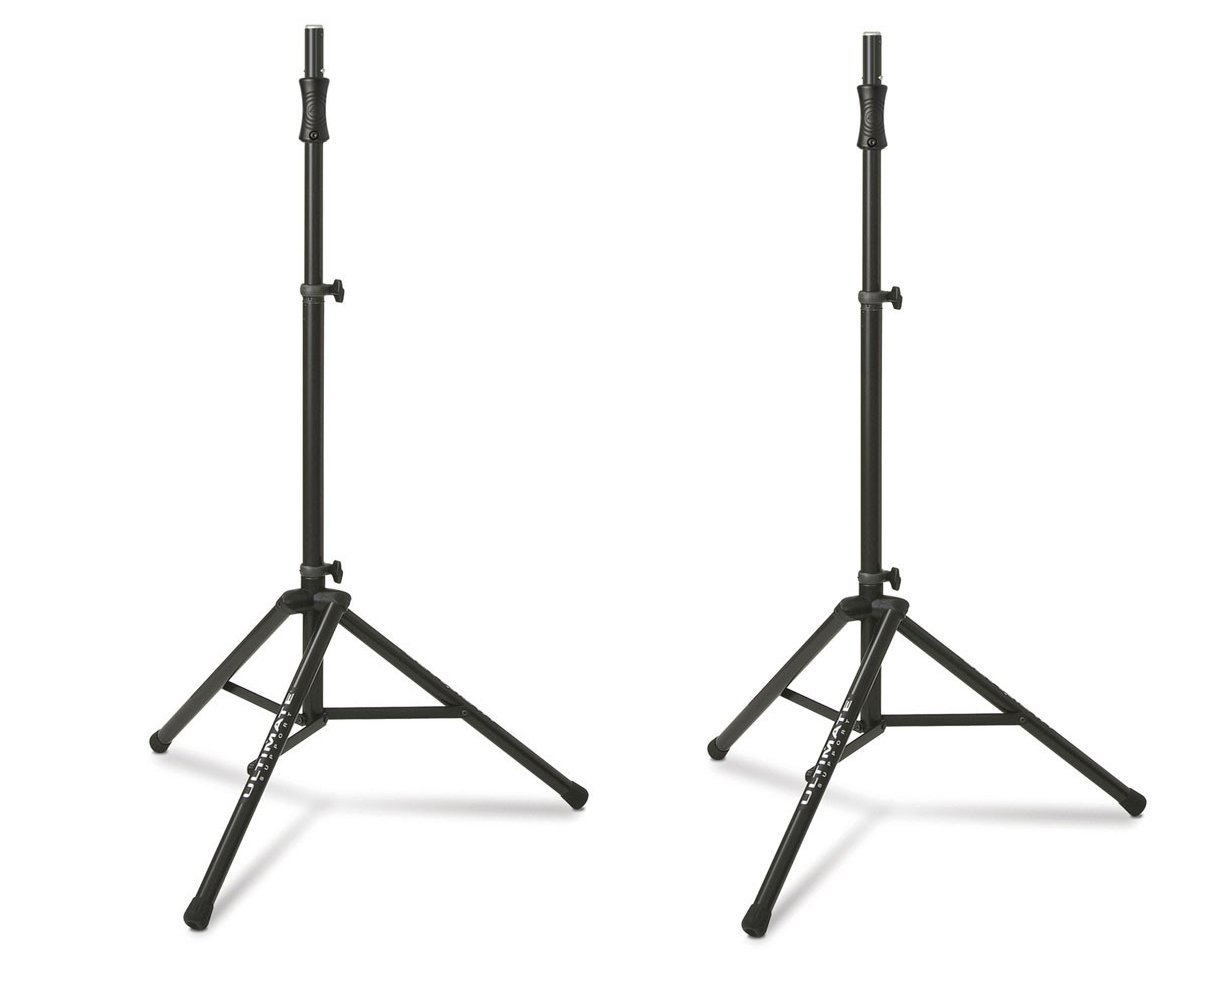 Ultimate Support TS-100B Air-Powered Series Lift-assist Aluminum Tripod Speaker Stand with Integrated Speaker... by Ultimate